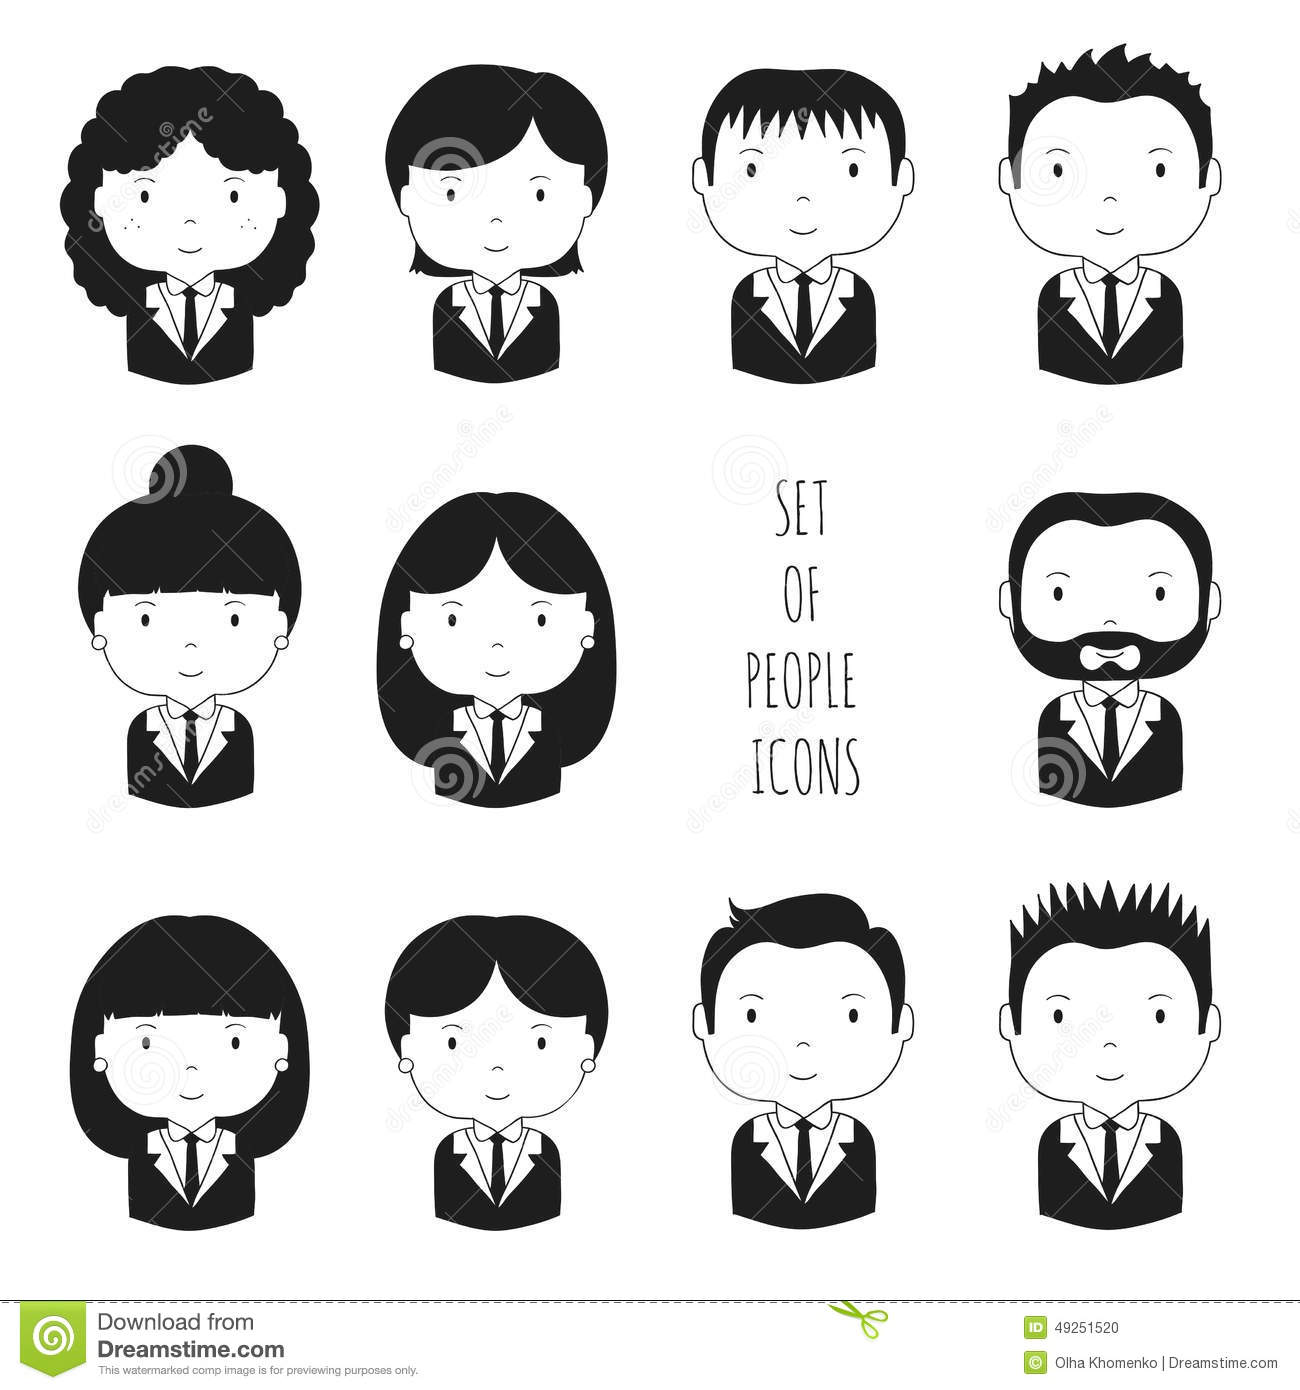 Set Of Monochrome Silhouette Office People Icons Stock